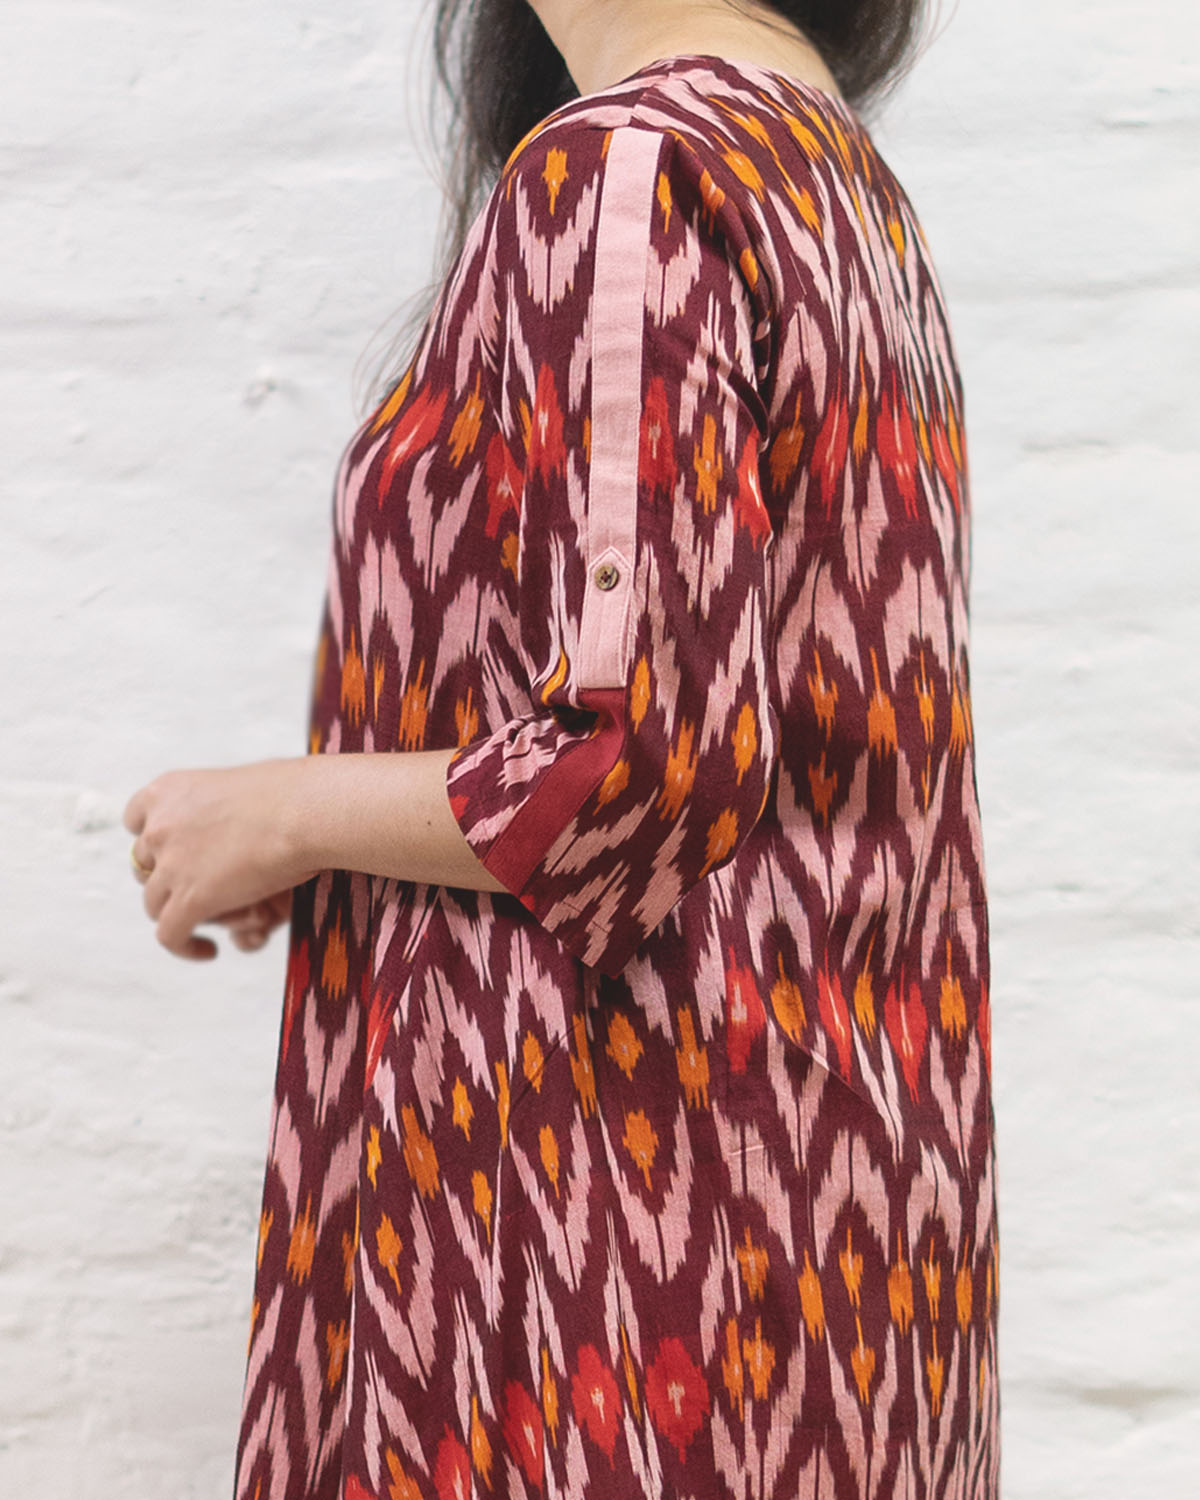 catalog/AA-Summer Musings/burgundy Ikat 3.jpg